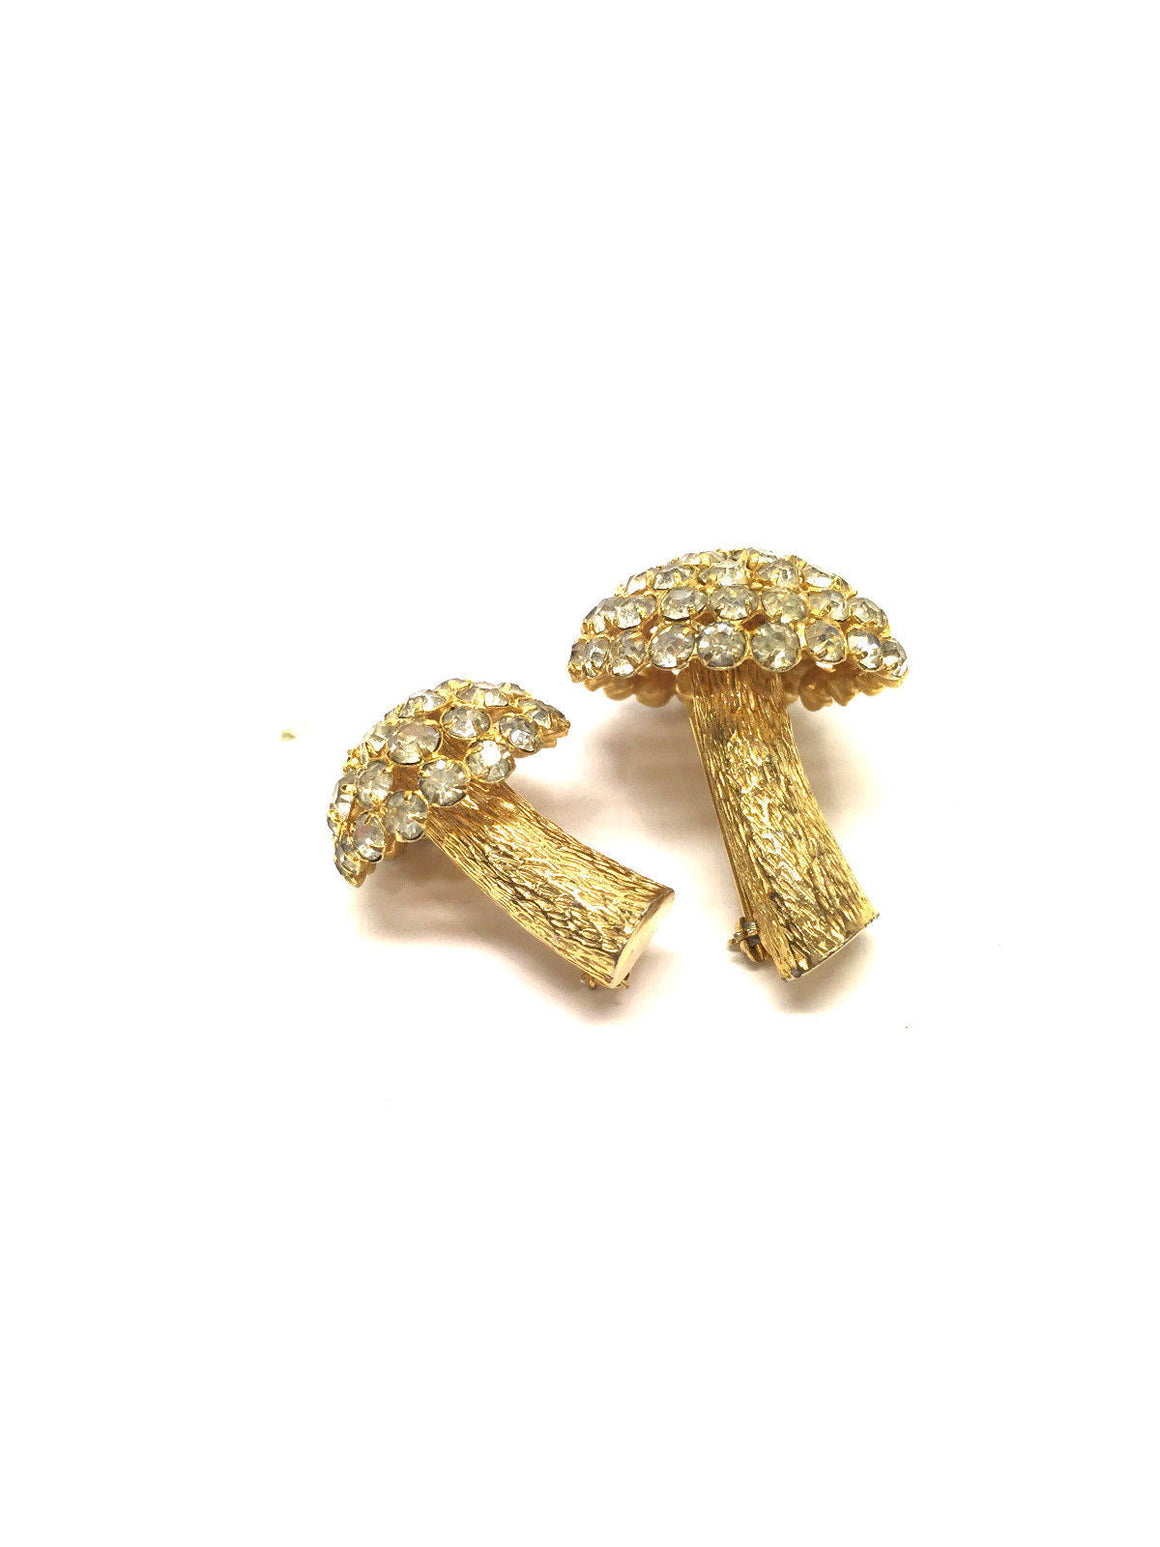 bisbiz.com CASTLECLIFF  Set of Two Gold-tone Crystal-Studded Mushroom Pins Brooch - Bis Luxury Resale